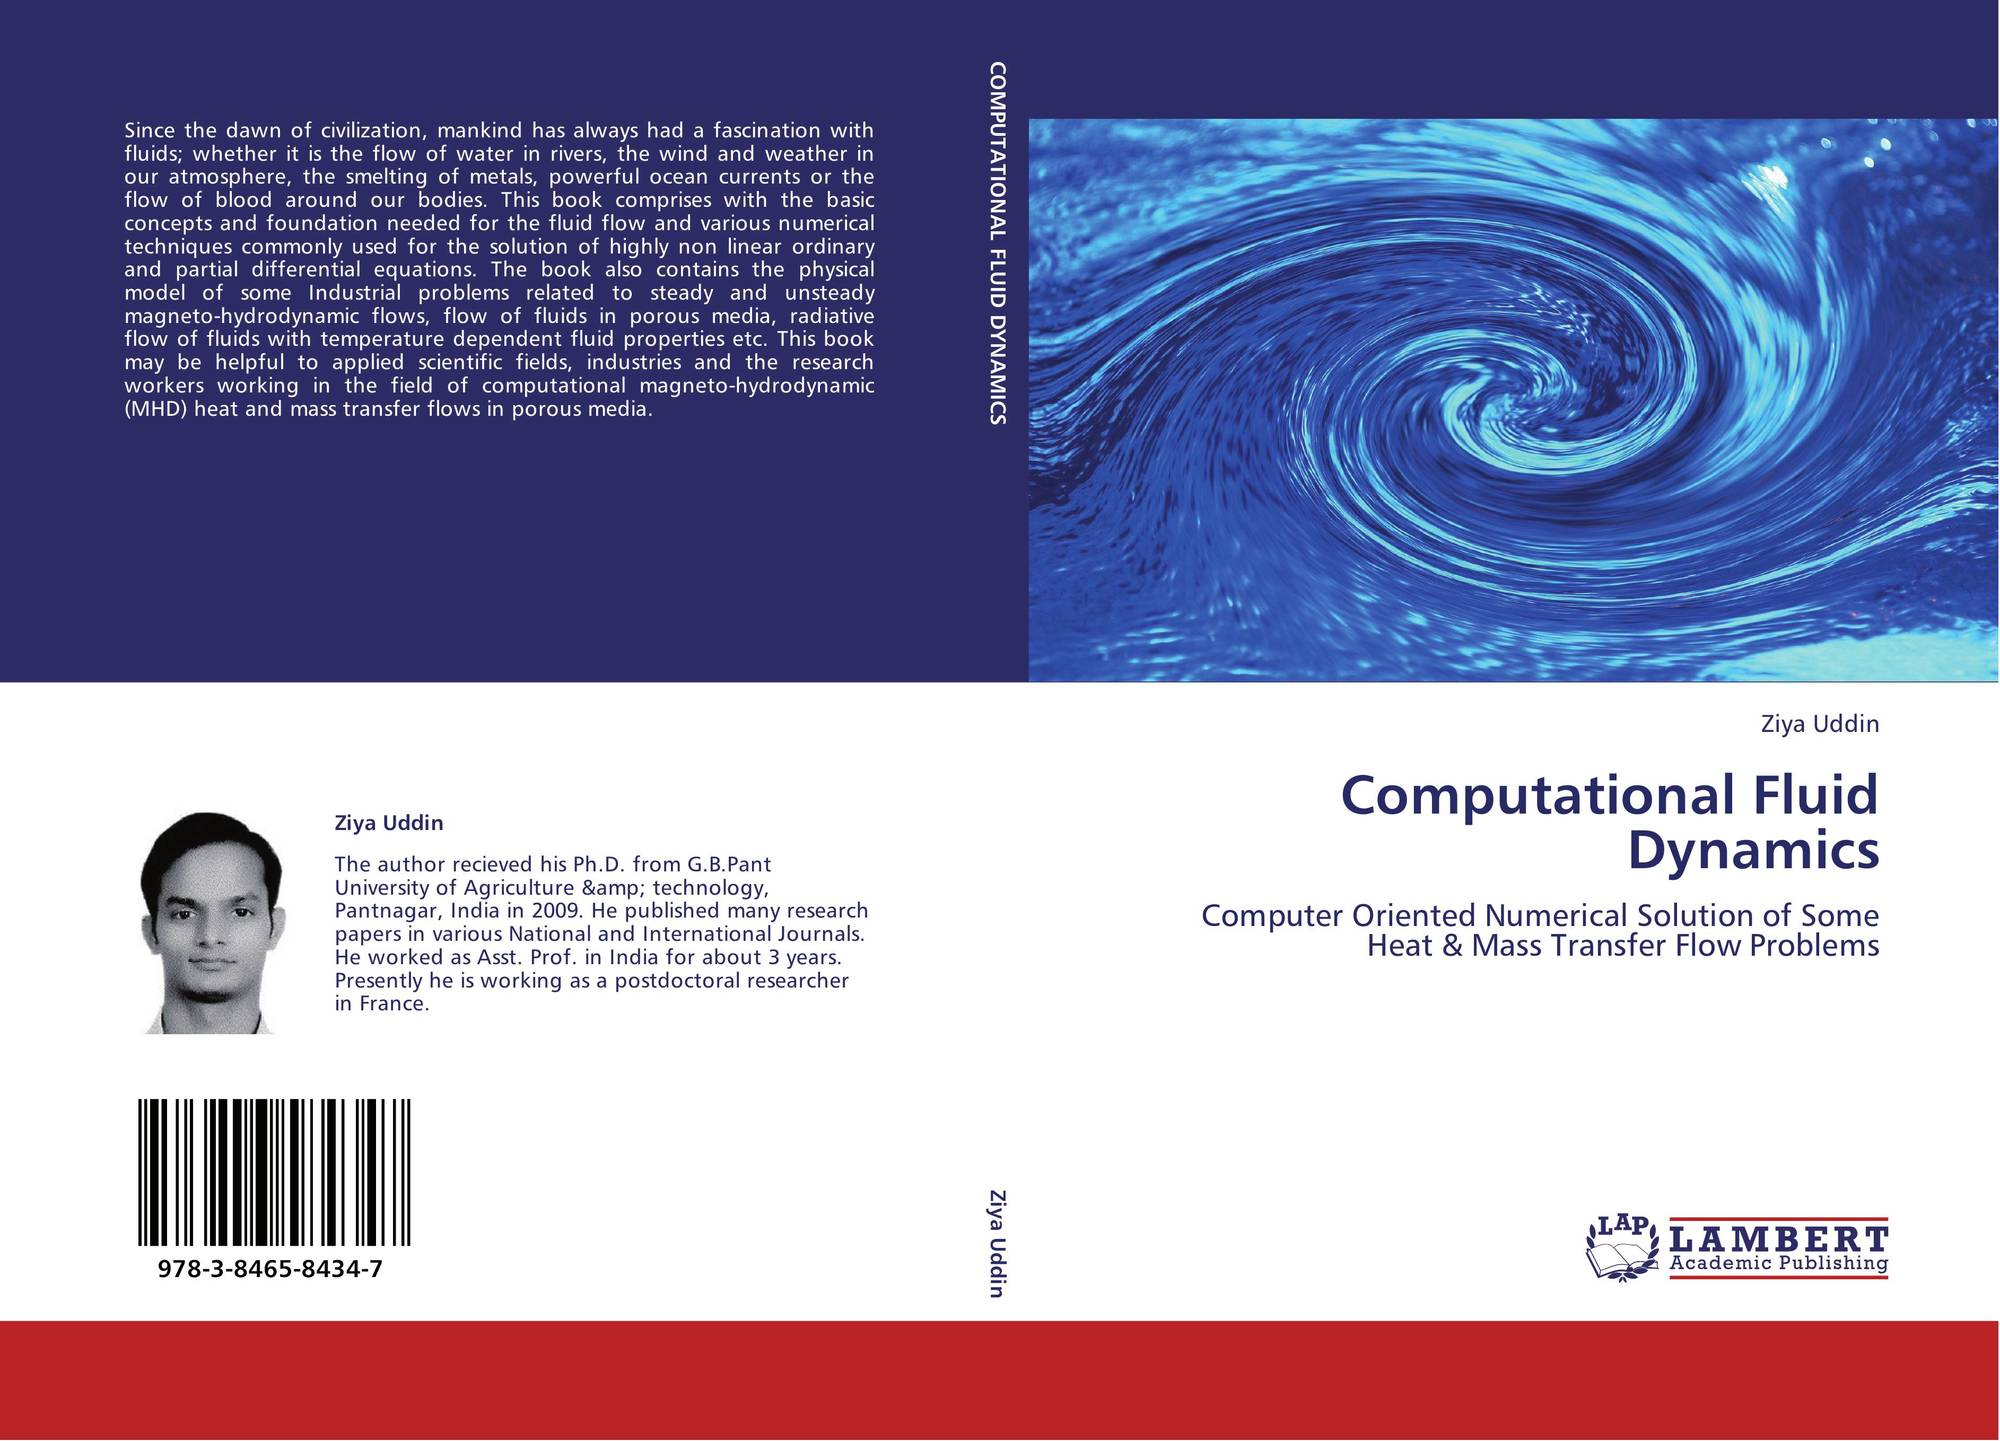 cfd research papers Cfd is a highly interdisciplinary research area which lies at the interface ofcomputational fluid dynamics cfd is the branch of fluid dynamics providing a cost-effective of research, in particular, the turbulent closure problem of thesolution.